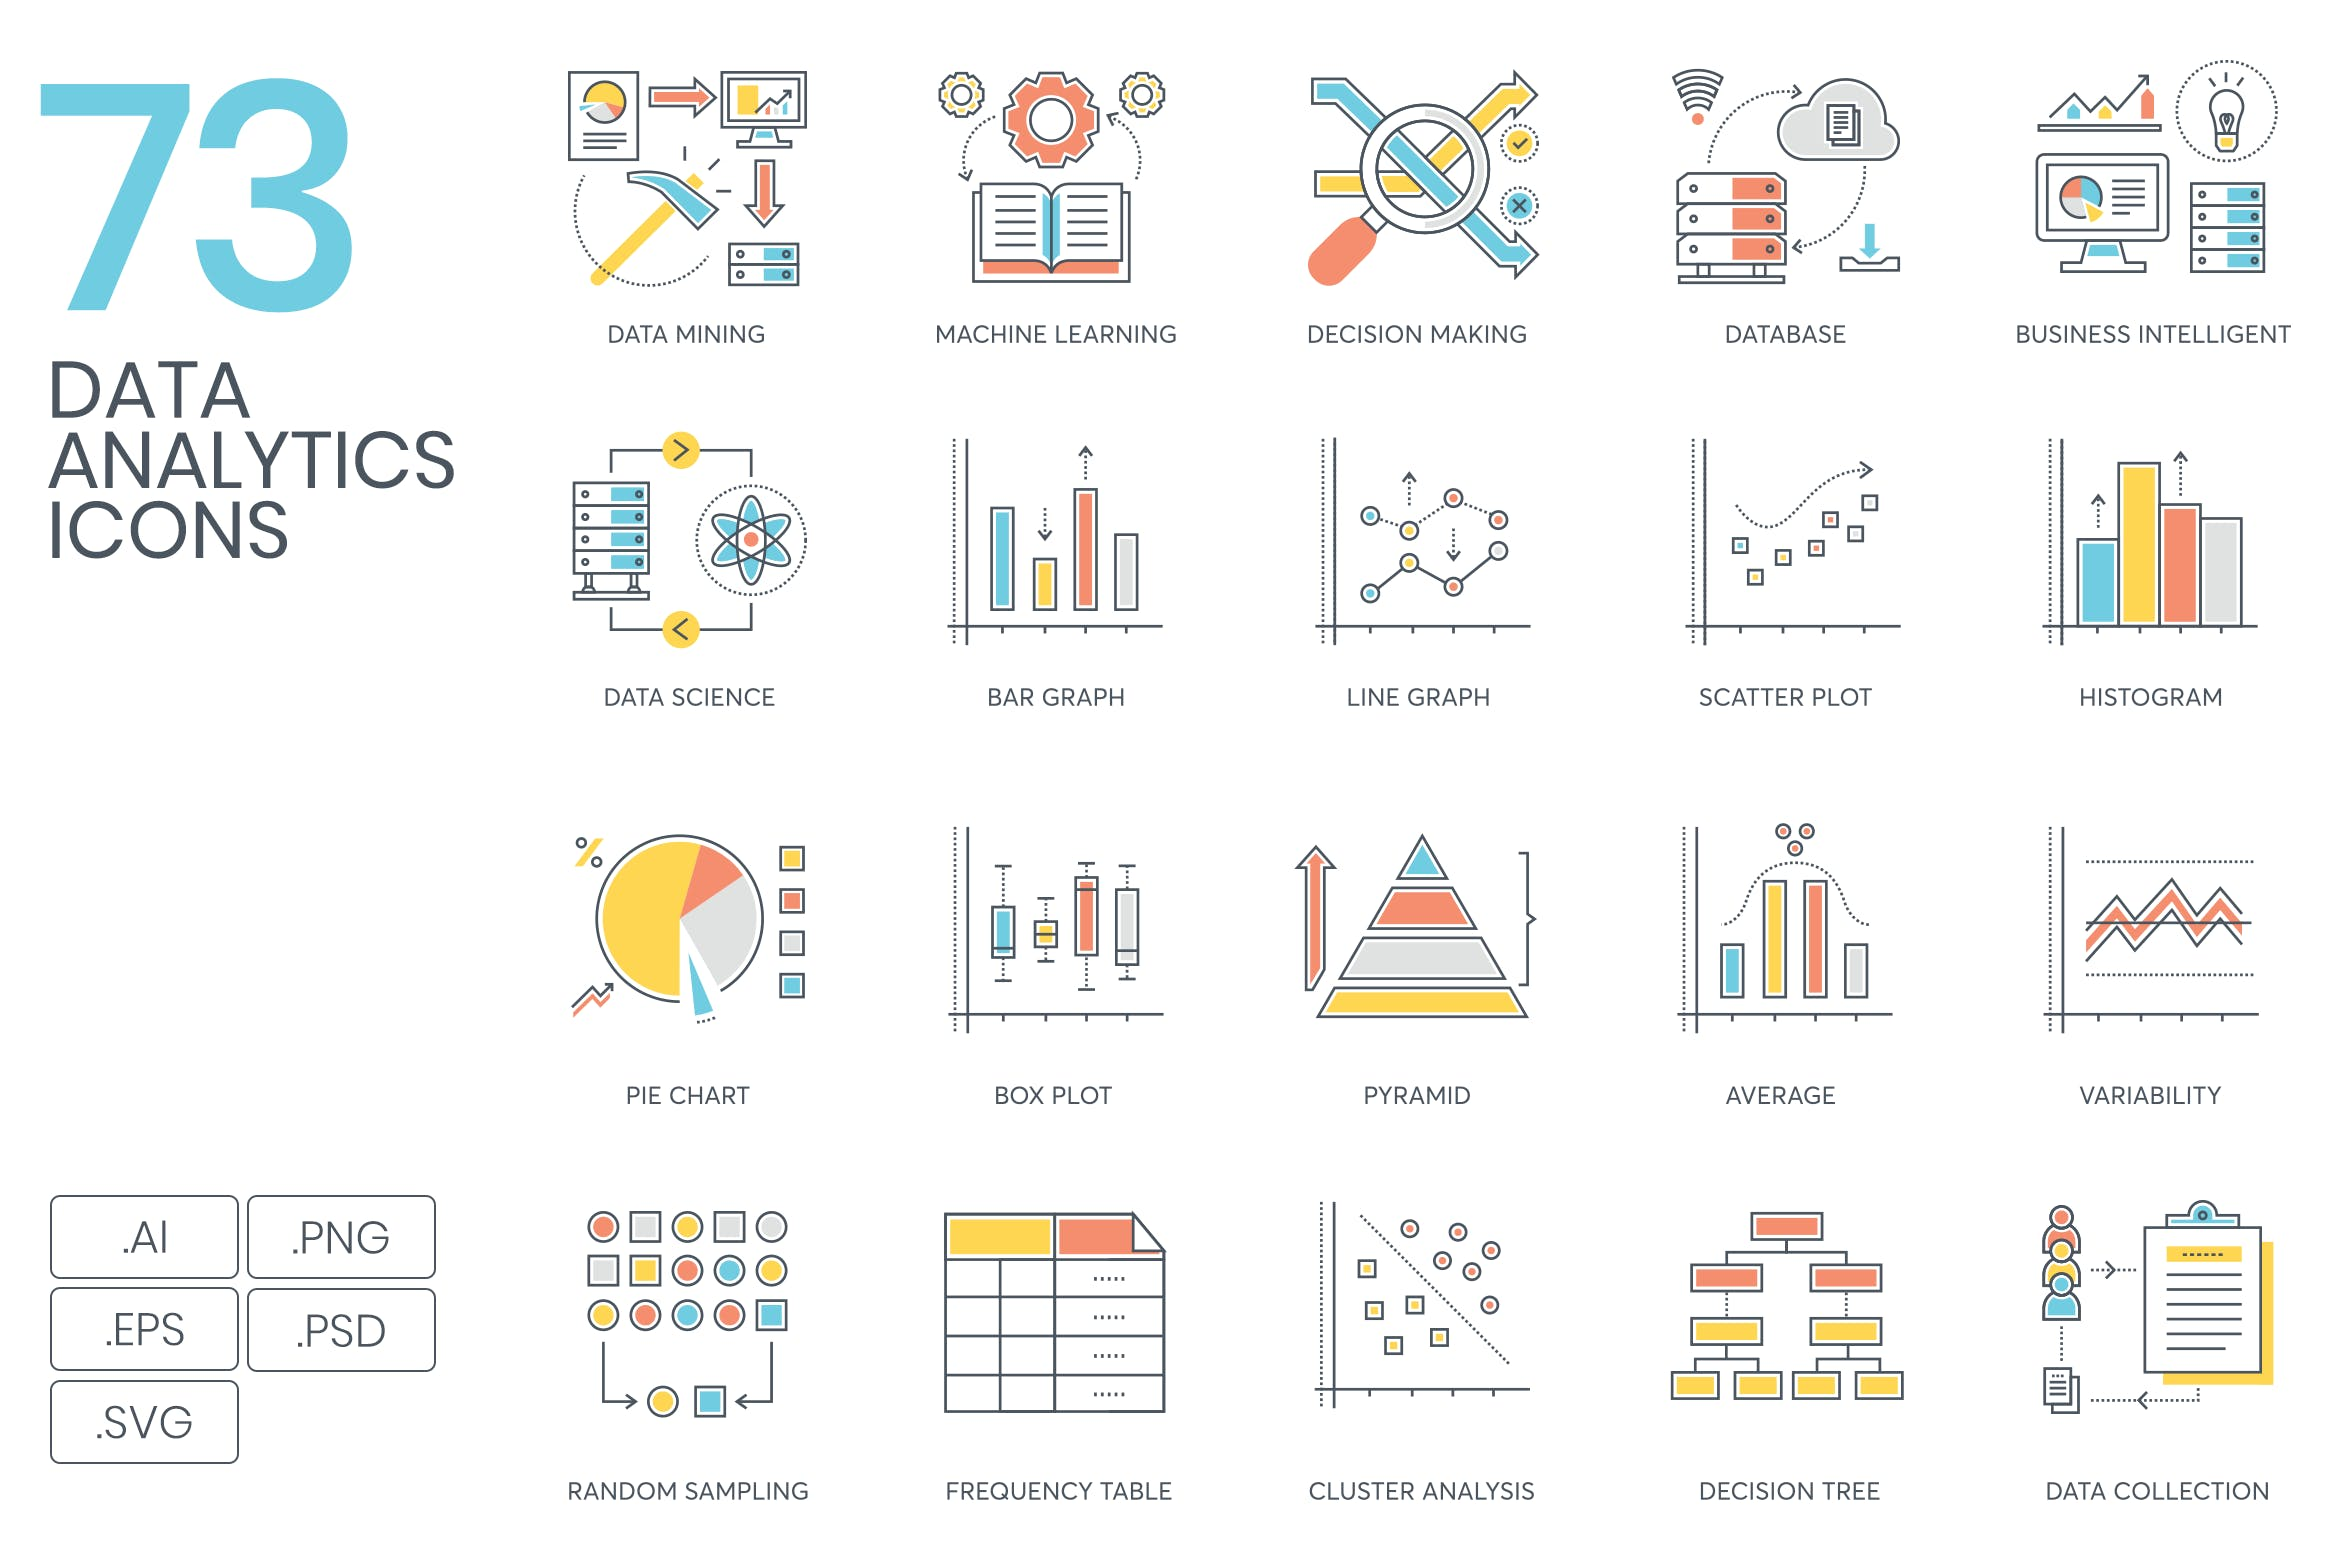 73 Data Analytics Icons by Krafted on Envato Elements.